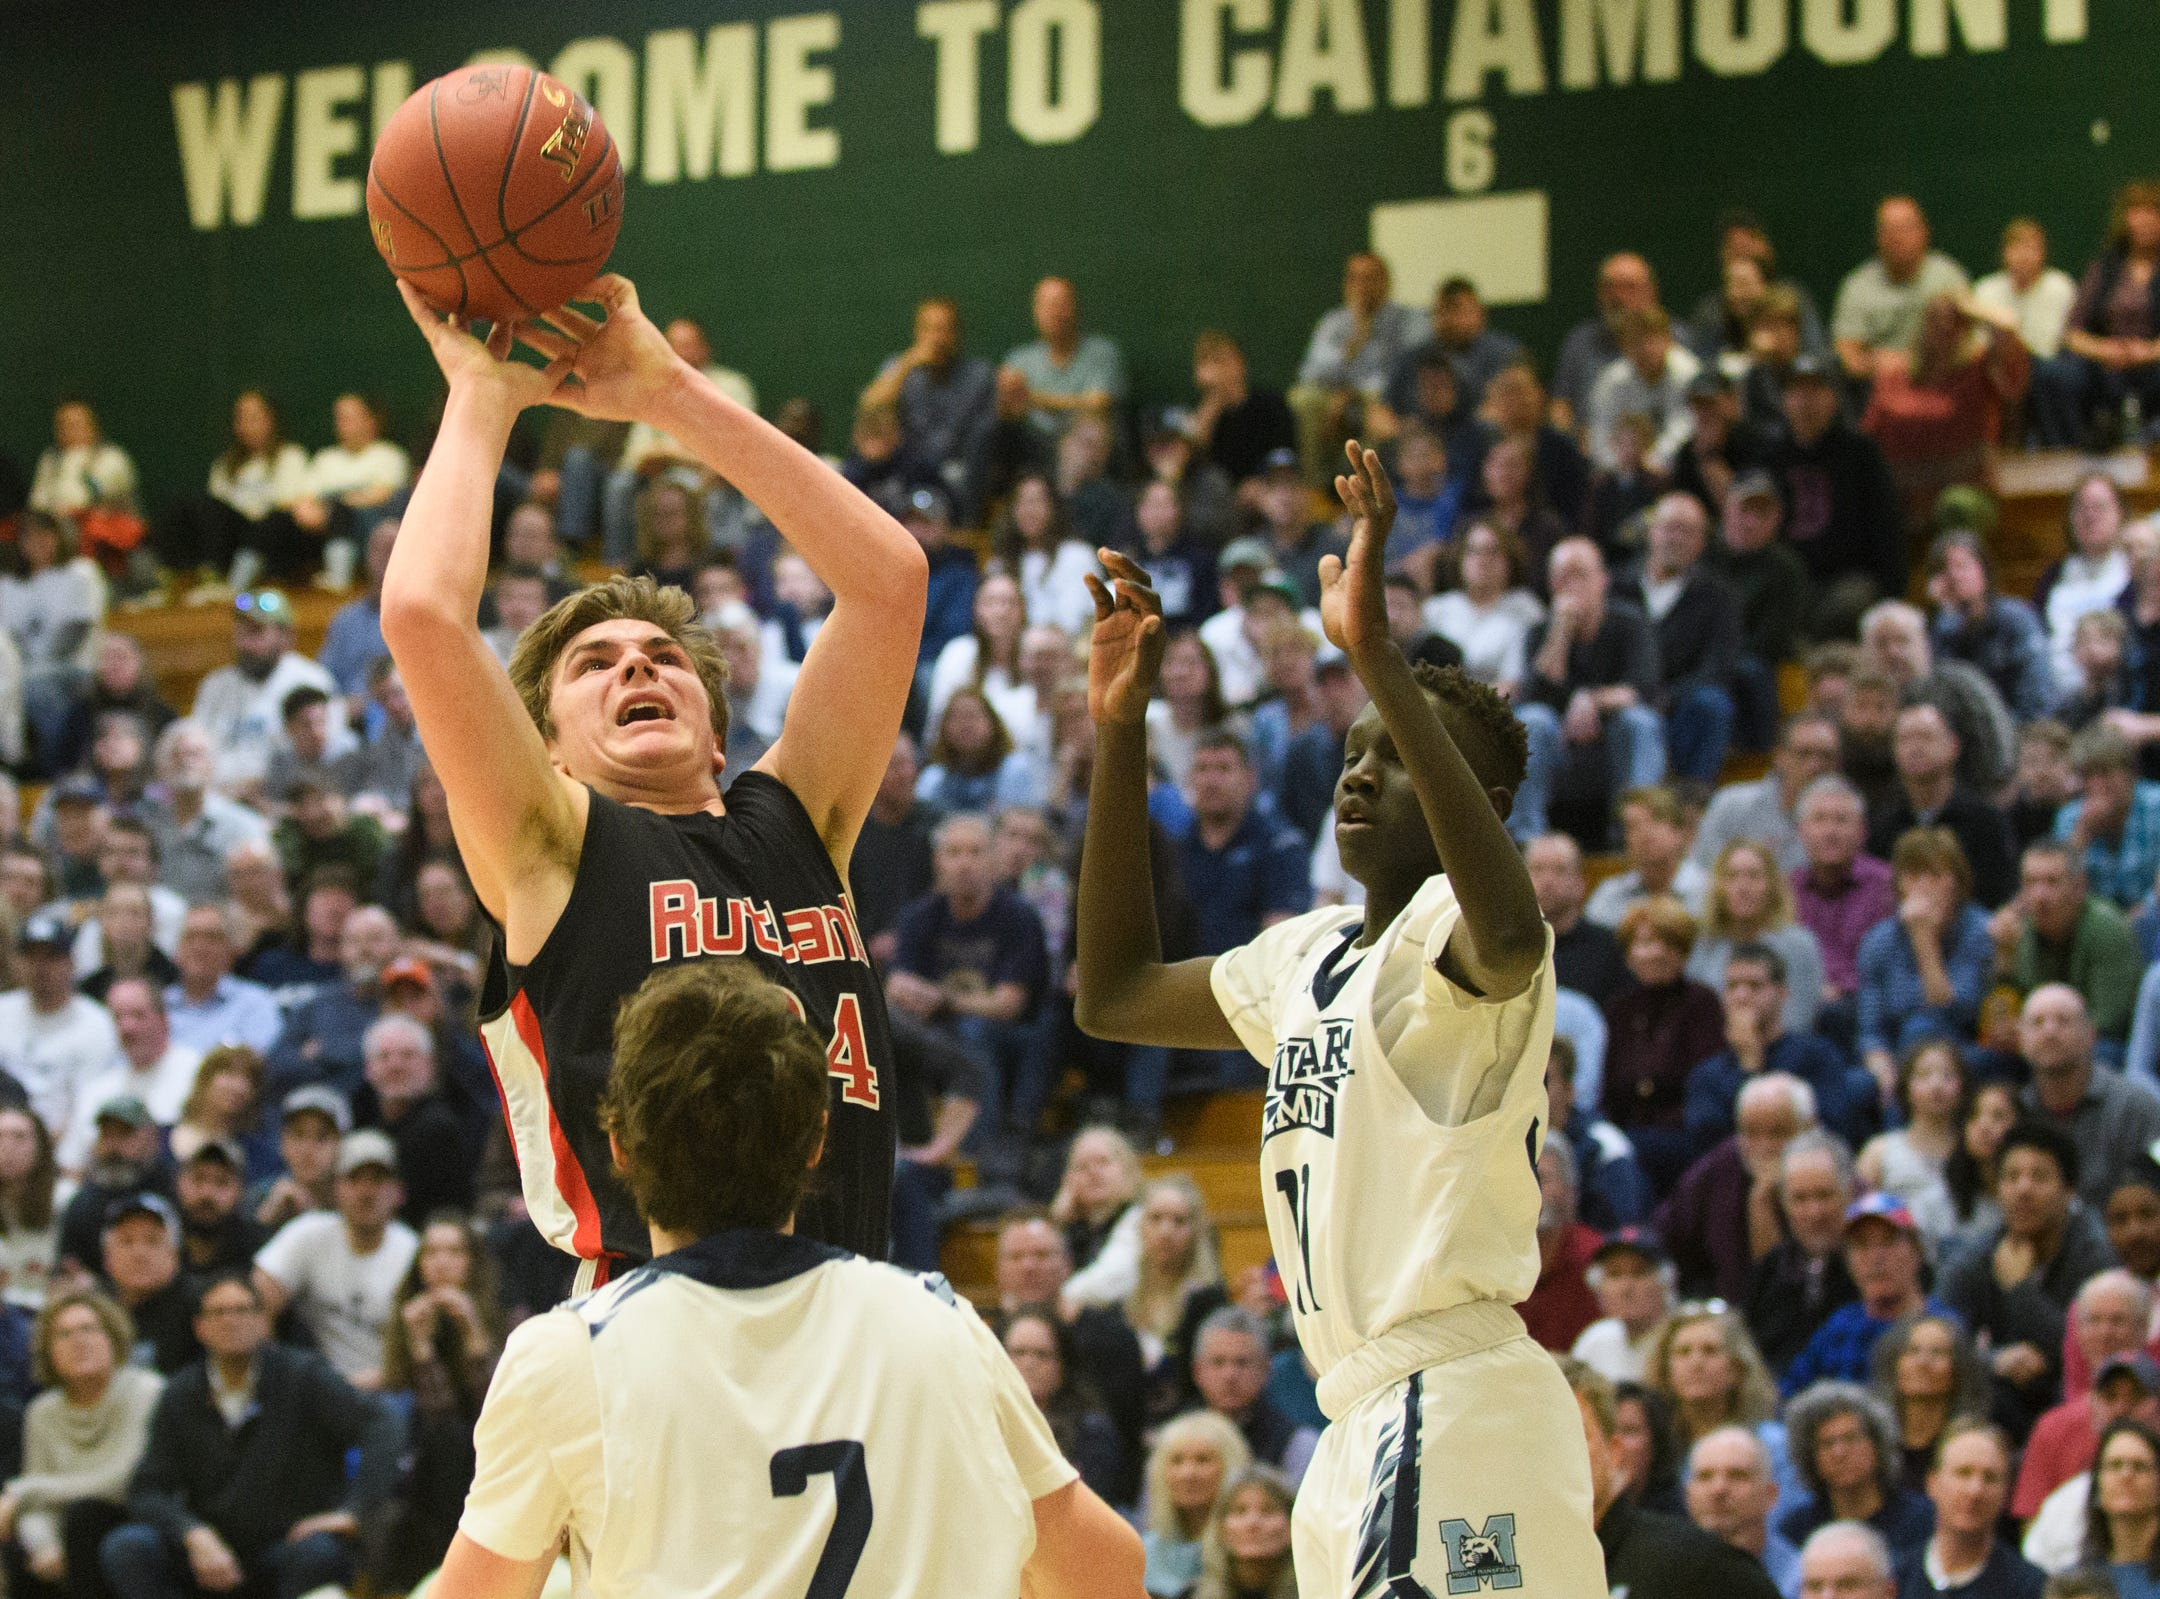 Rutland's Jacob Lorman (24) leaps to take a shot during the boys DI semi final basketball game between the Rutland Raiders and the Mount Mansfield Cougars at Patrick Gym on Monday night March 11, 2019 in Burlington, Vermont.